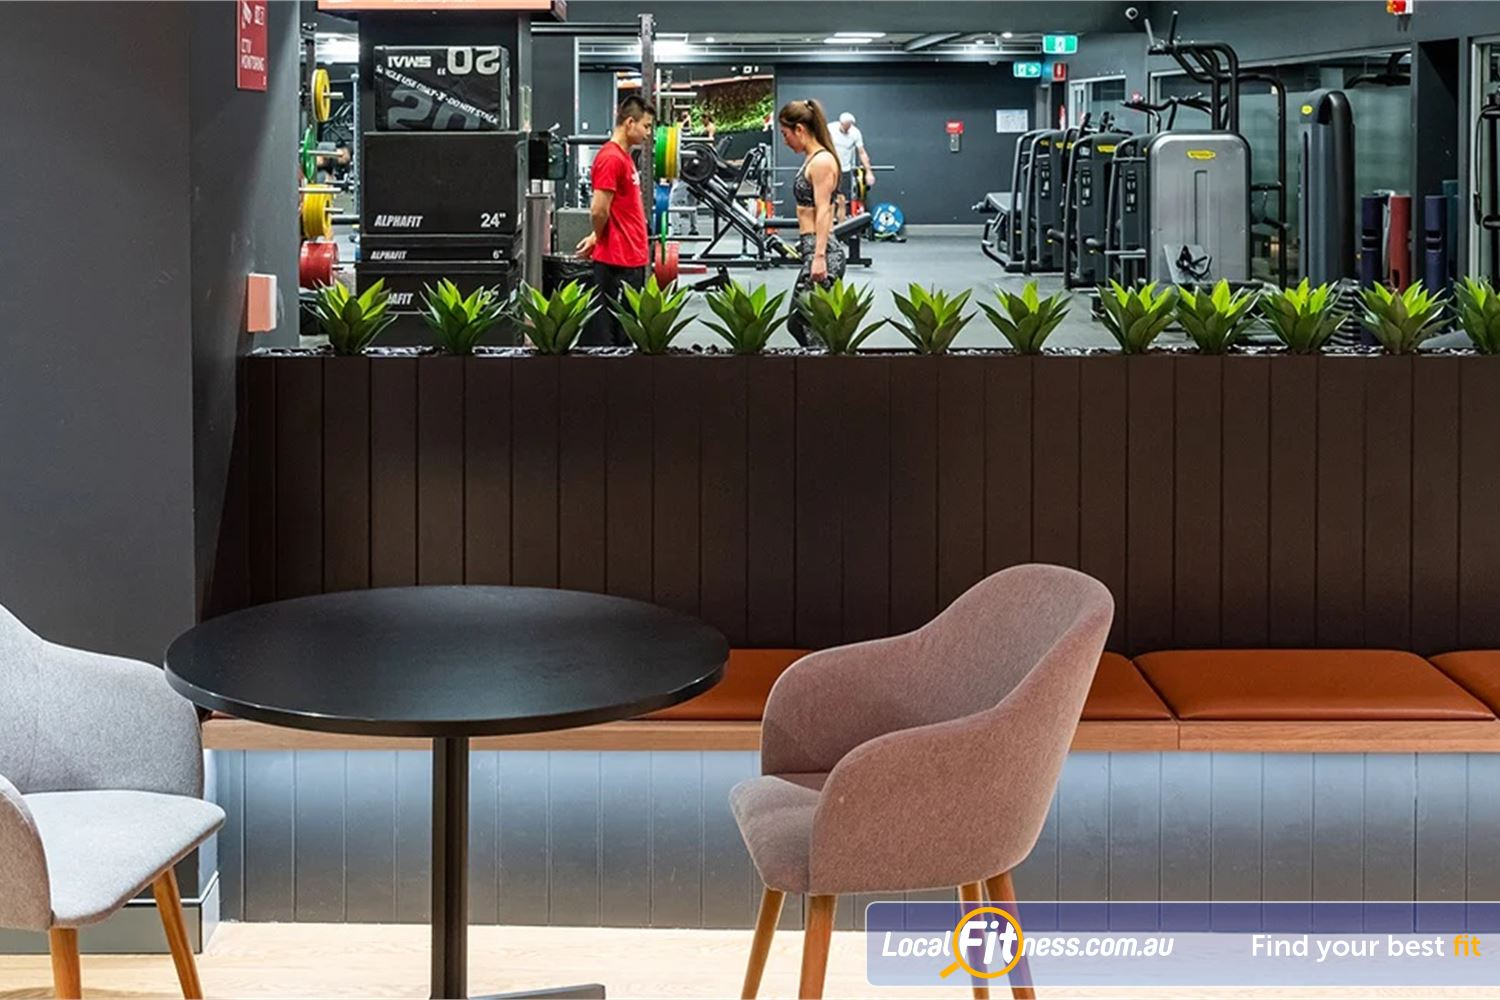 Fitness First Platinum Pitt St Sydney Our Sydney gym uses state of the art Technogym pin-loading machines.